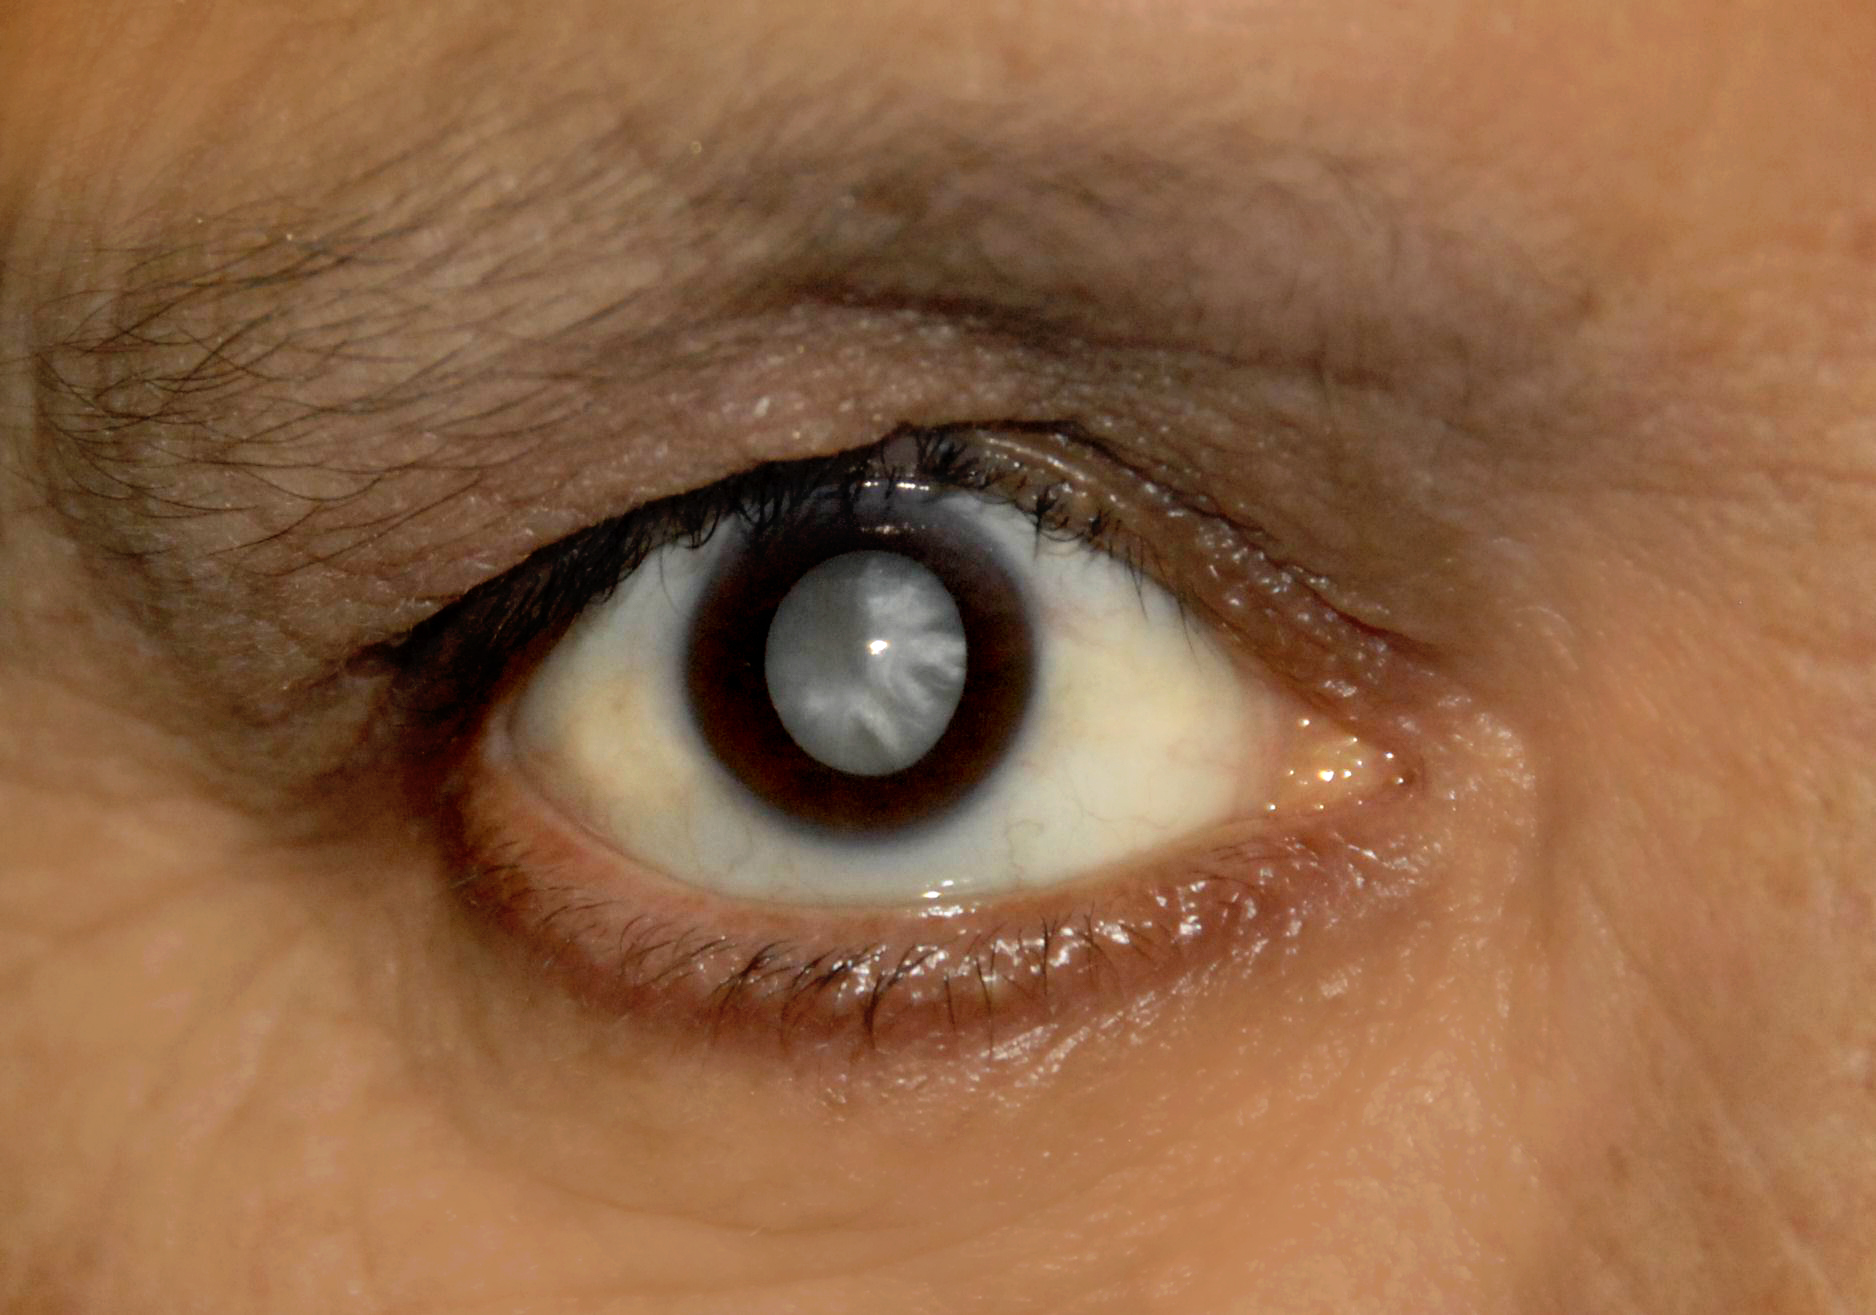 Image of an eye with cataract